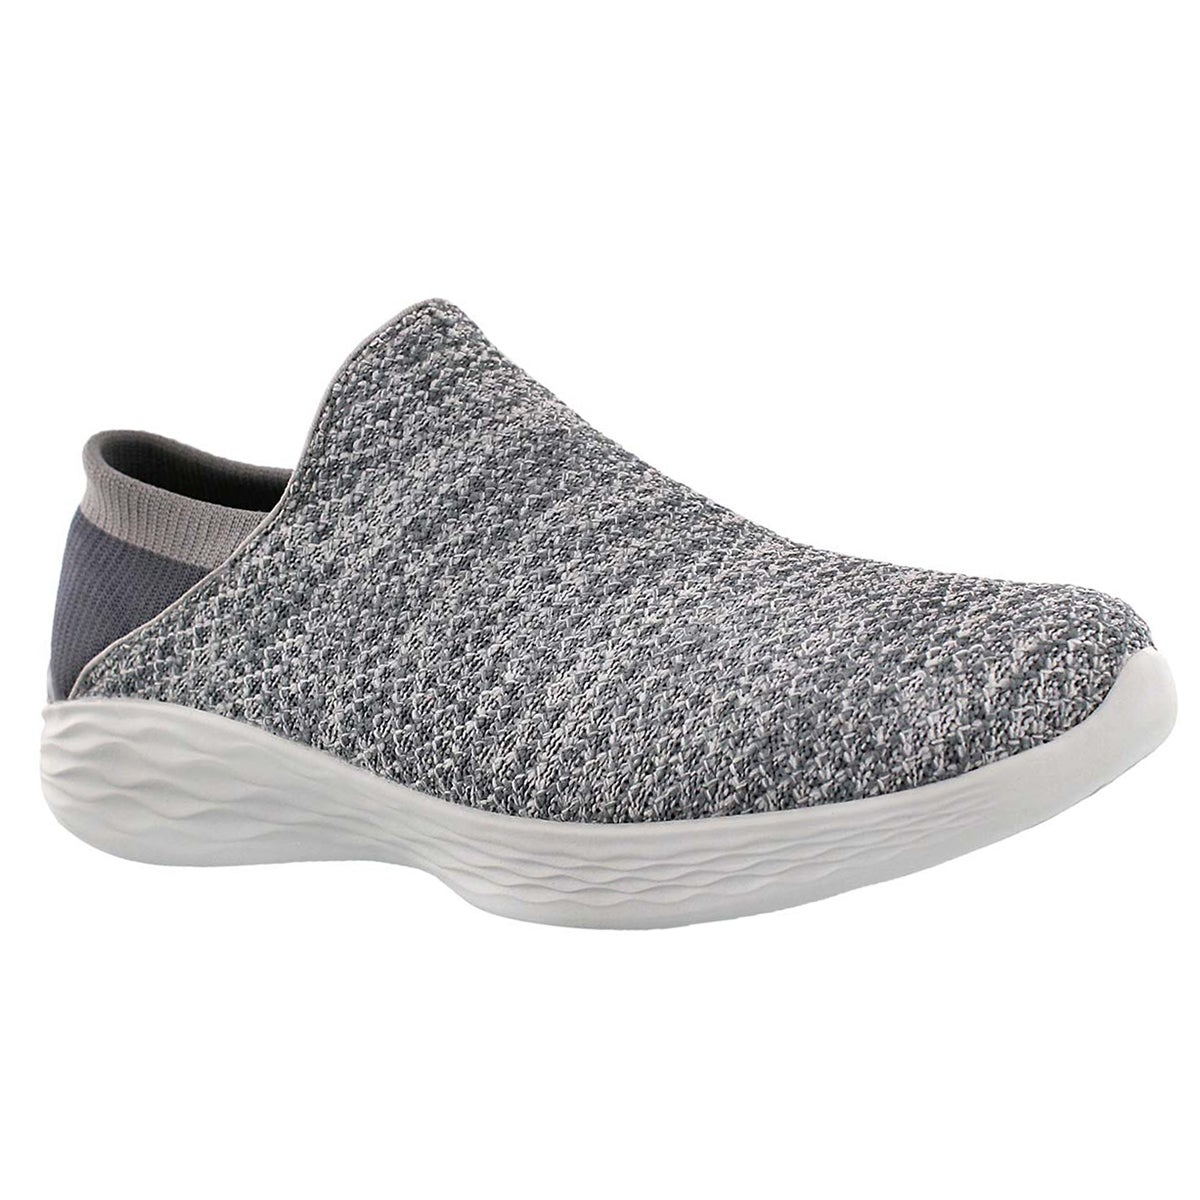 Women's YOU charcoal slip on walking shoes